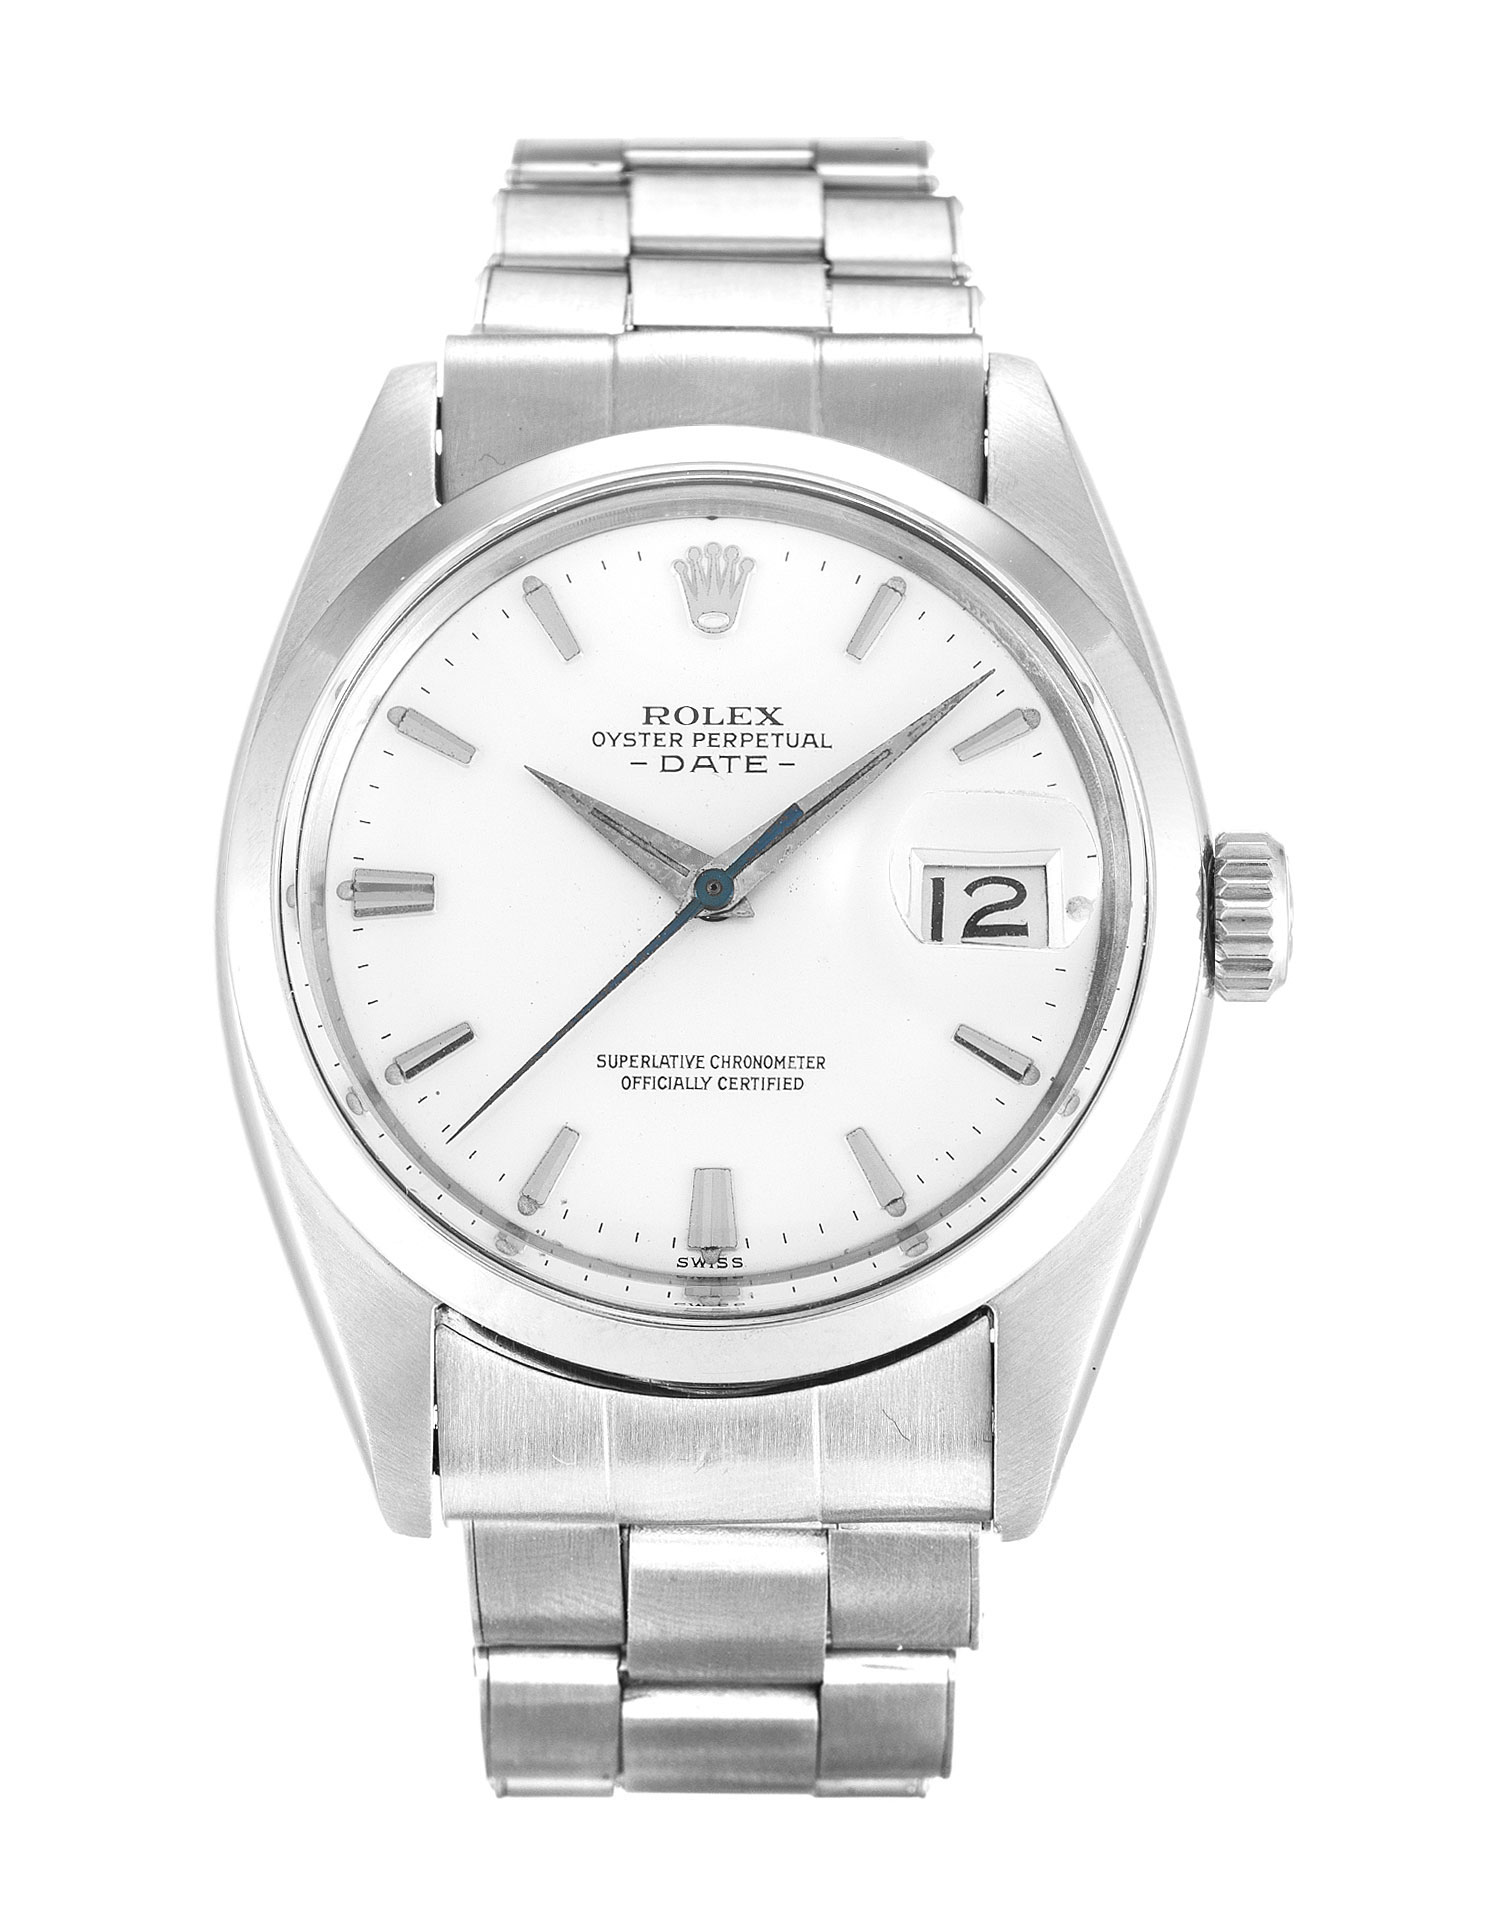 Rolex Oyster Perpetual Date 1500 Mens 36 Mm Steel Case Automatic Movement – iapac.to